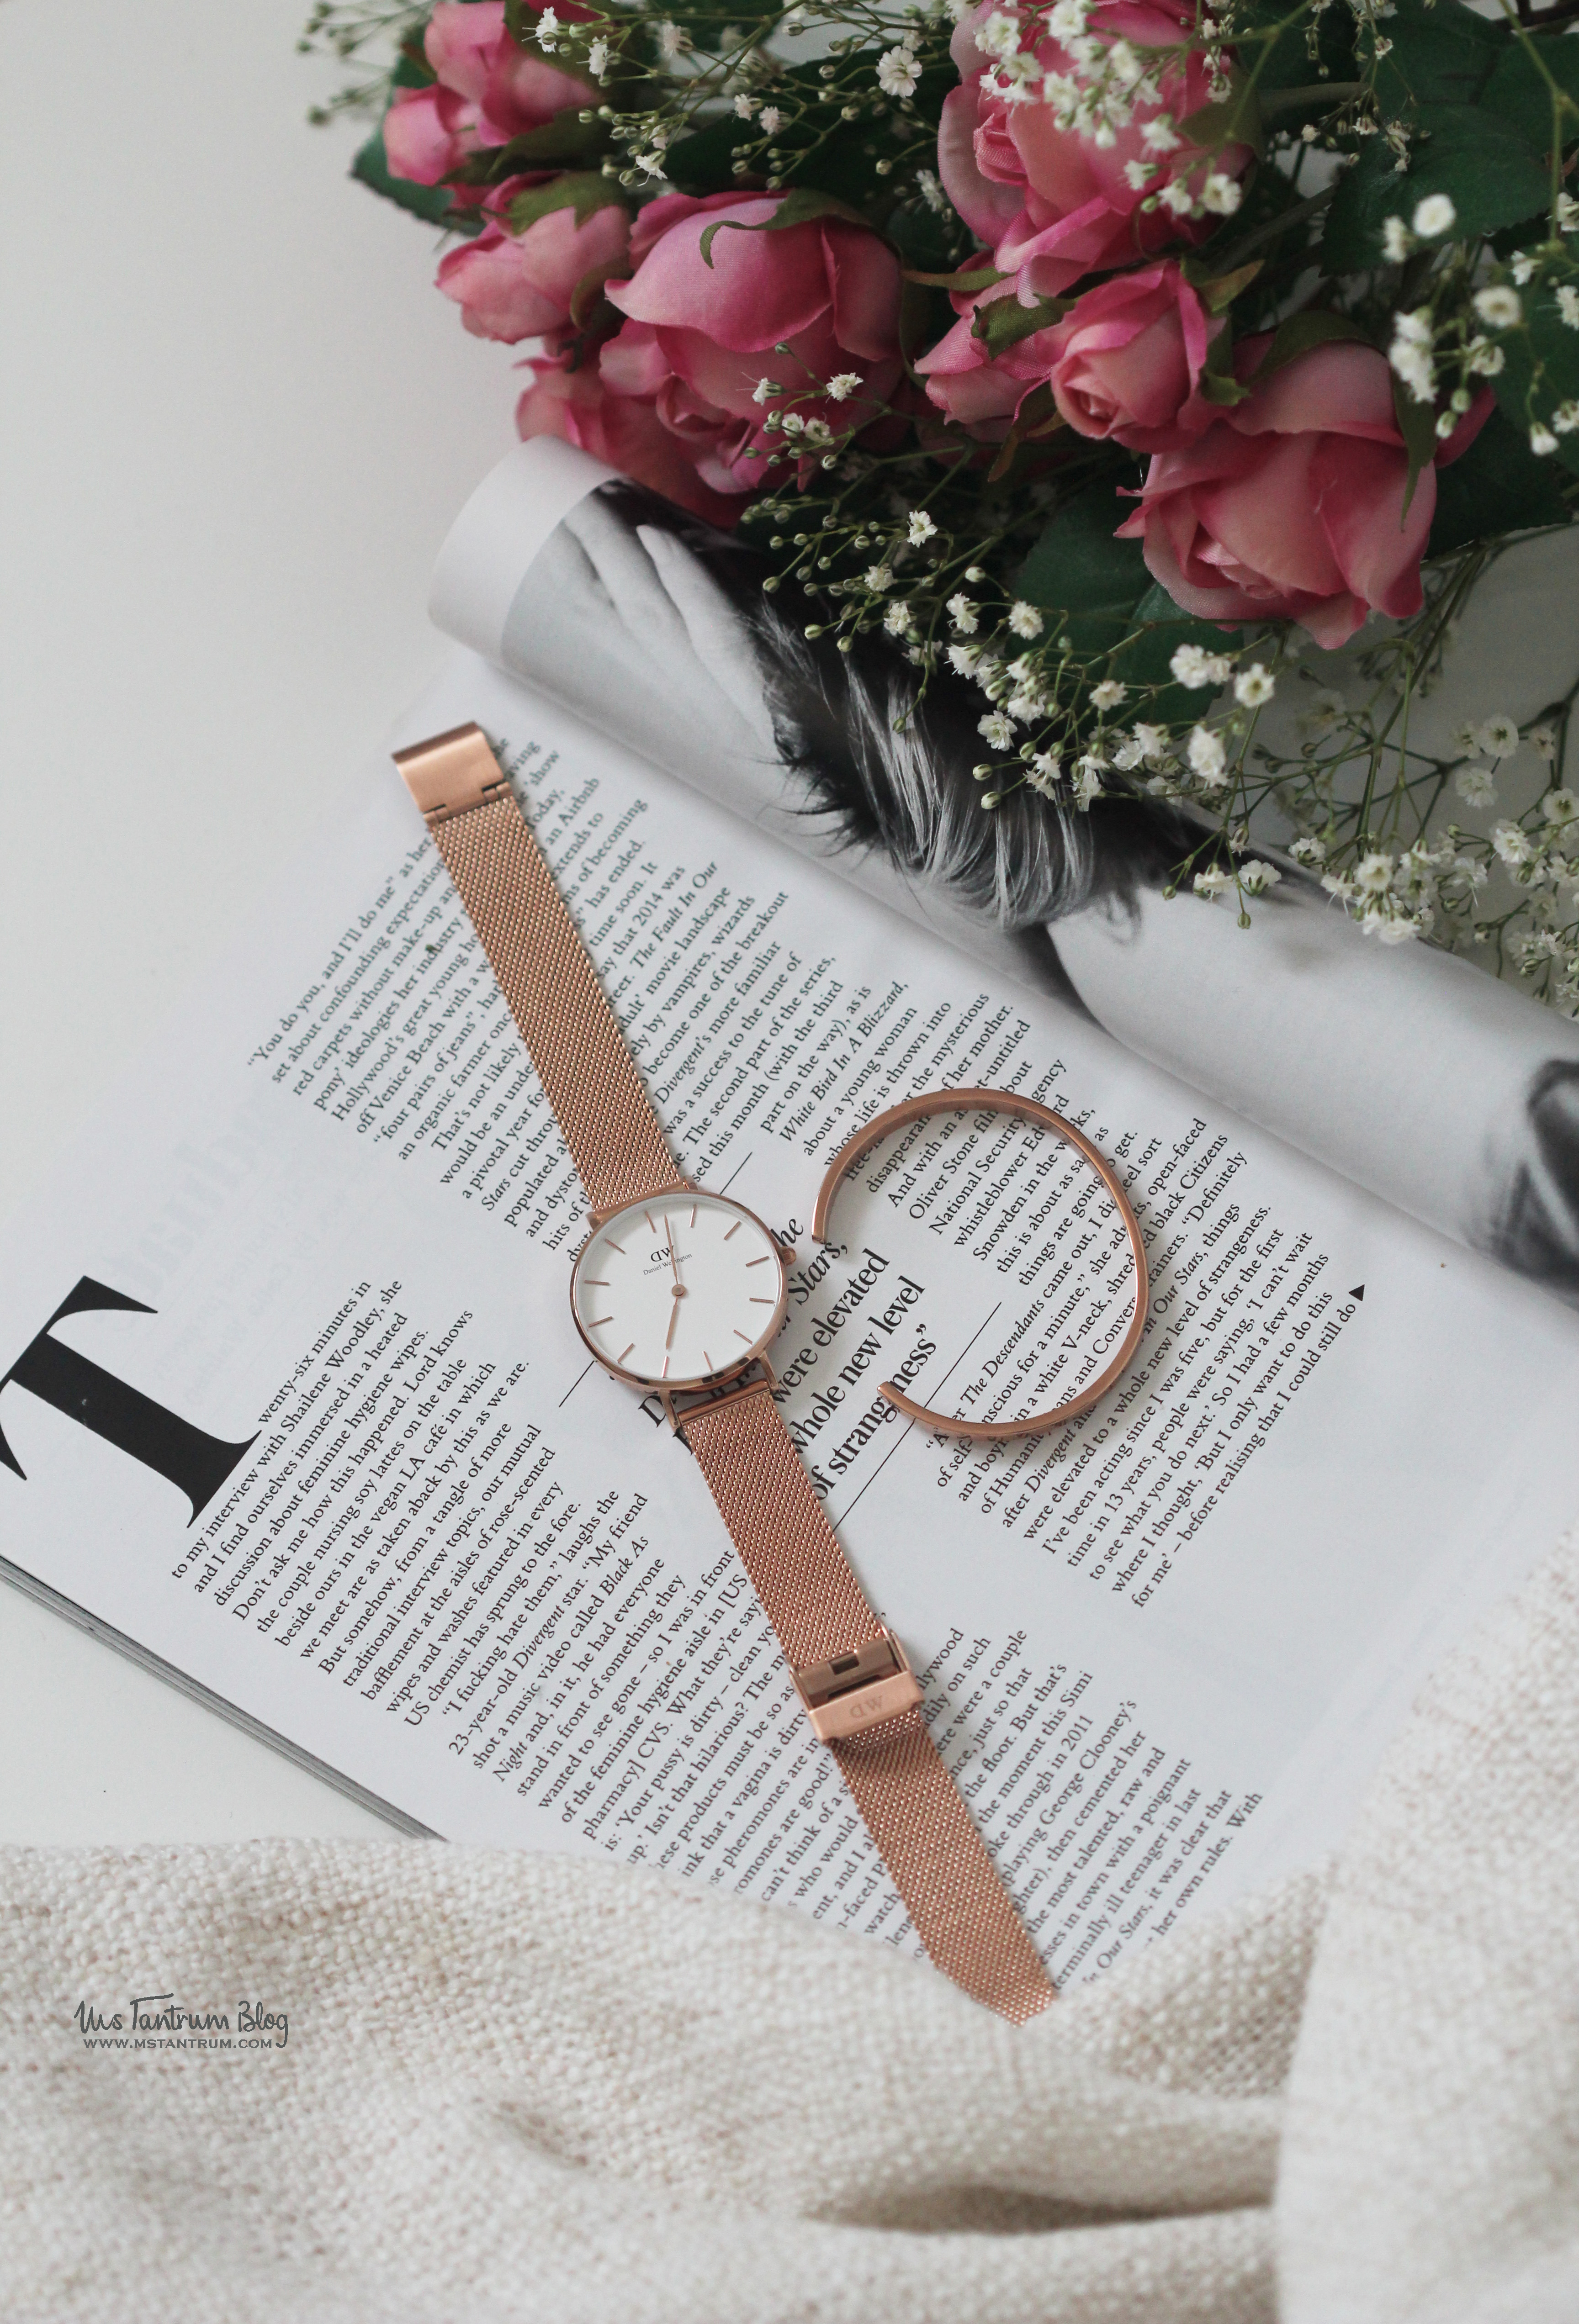 697490161ea9 I have always admired Daniel Wellington watches. All their watches are so  chic